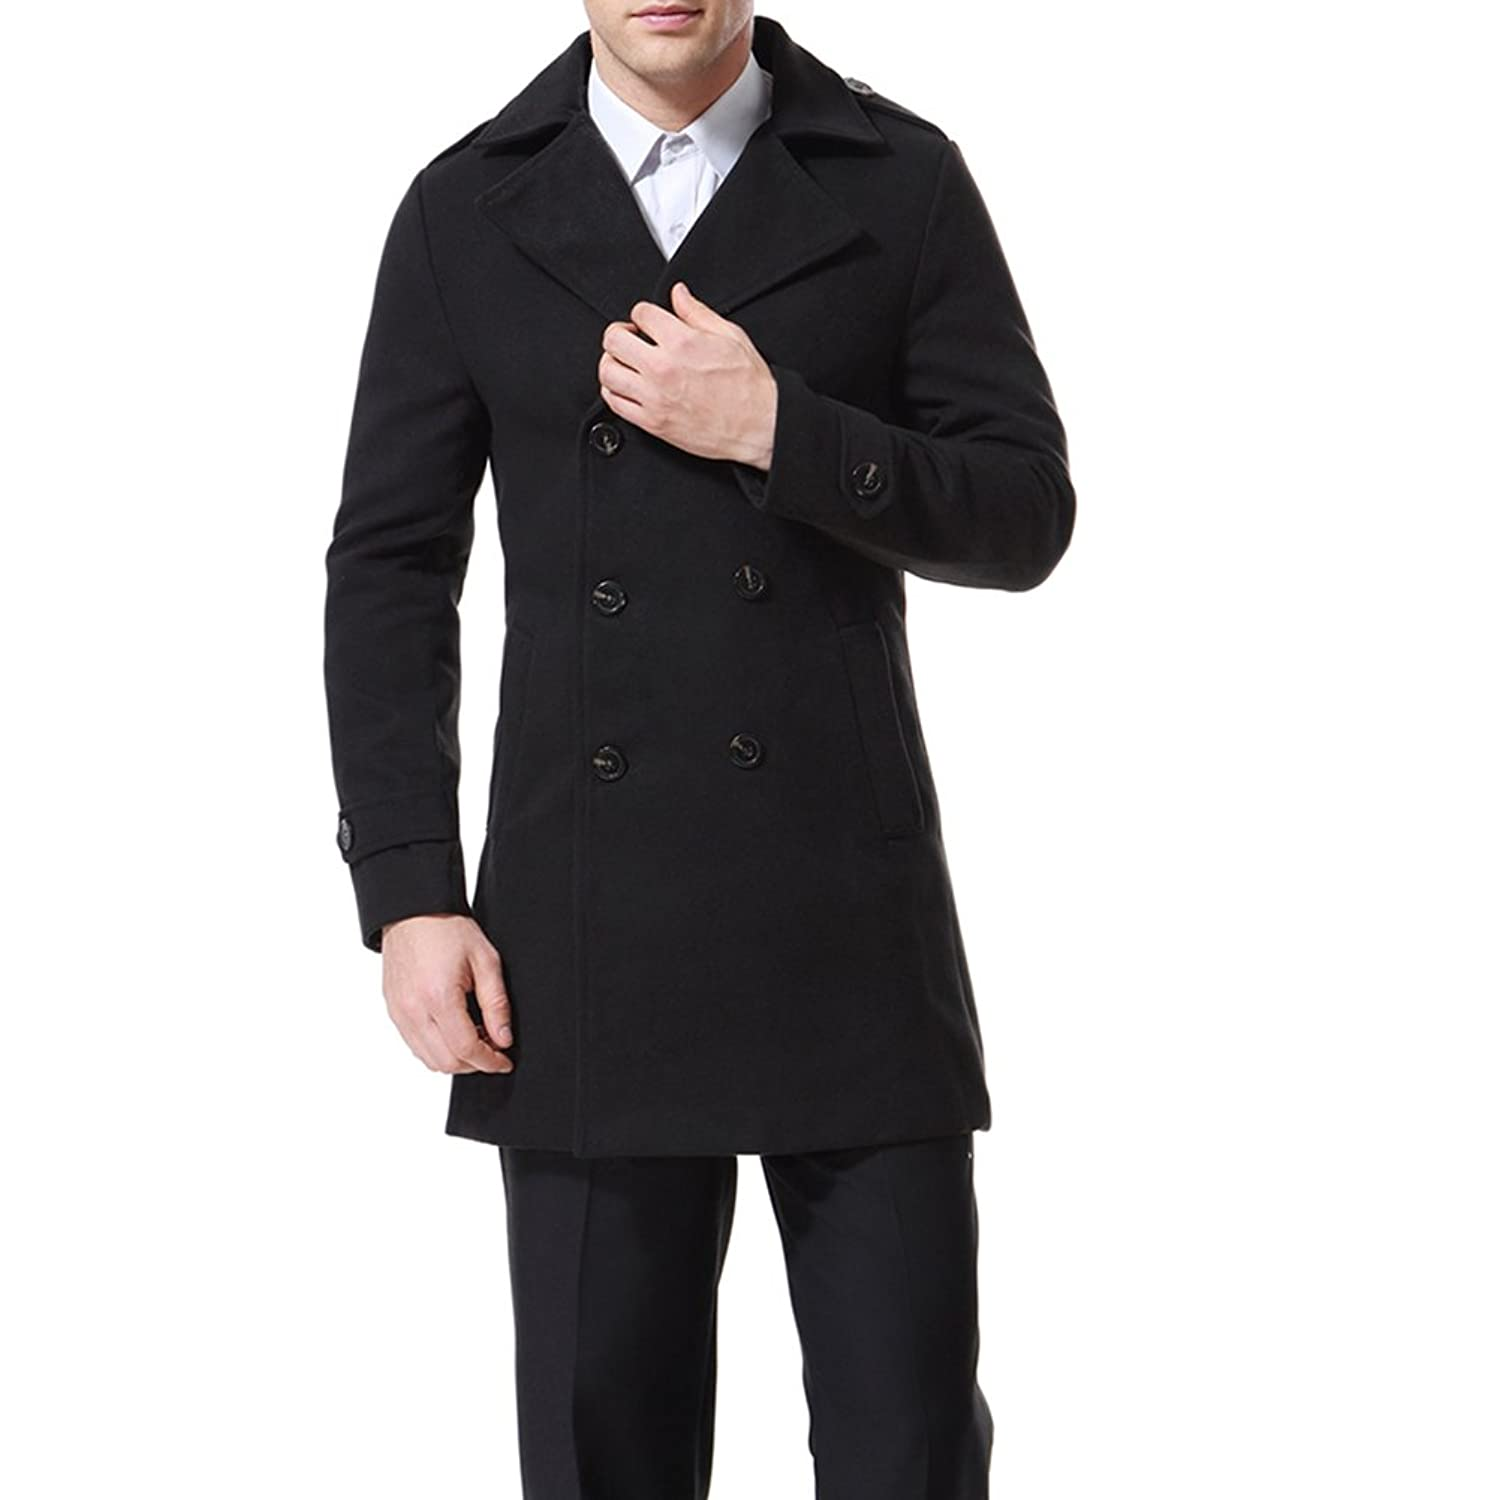 a5d3eae03e Top 10 wholesale Dark Green Winter Coat - Chinabrands.com